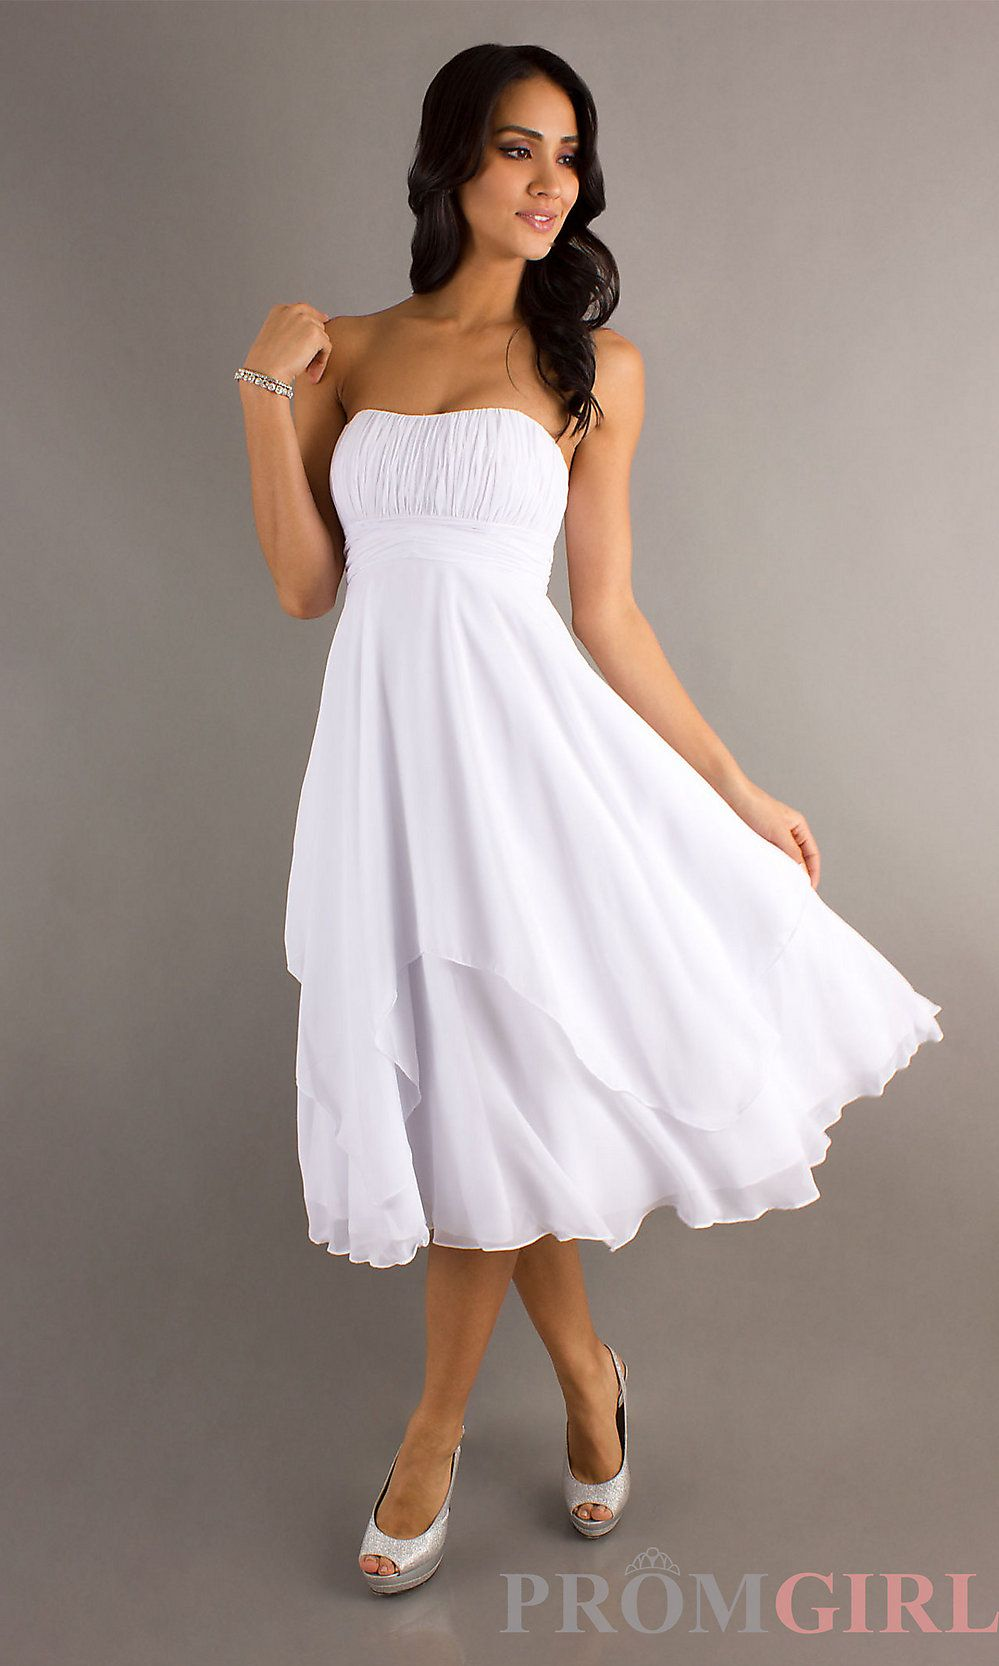 Dream Wedding Dress White Short Casual Wedding Dress Casual Wedding Dresses Wedding Dresses Homecoming Dresses Short Wedding Dress Knee Length Prom Dress